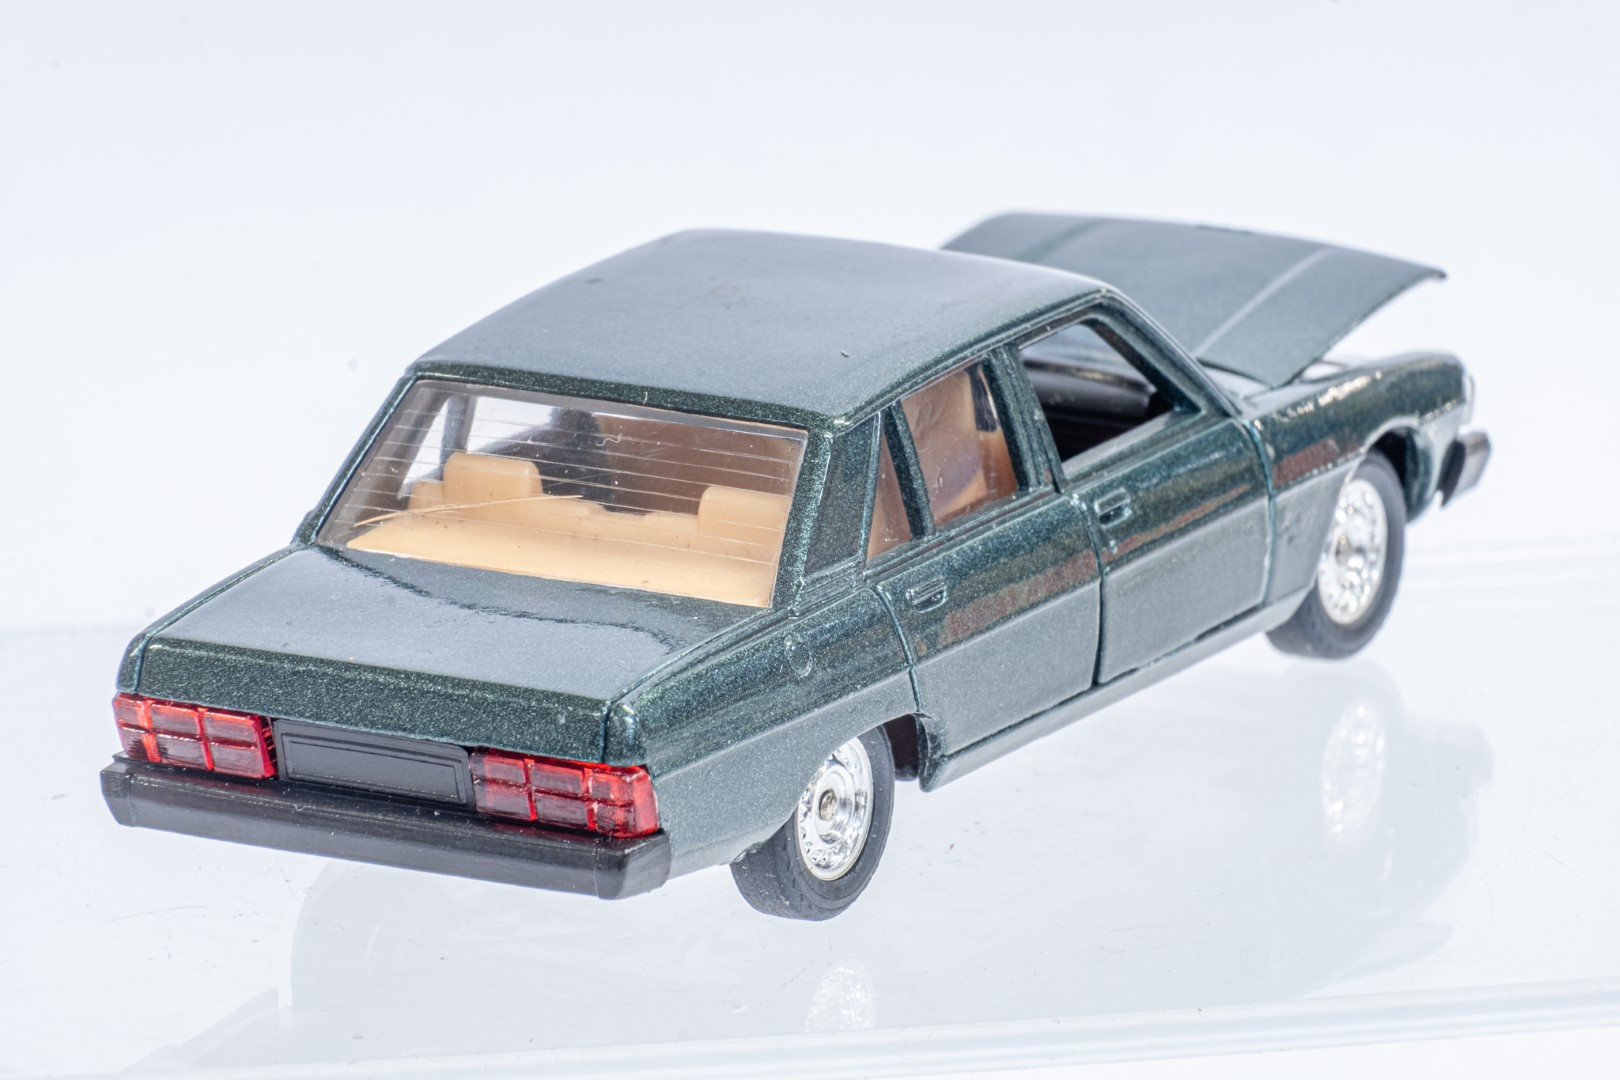 Solido 40 Peugeot 604 - Image 7 of 8